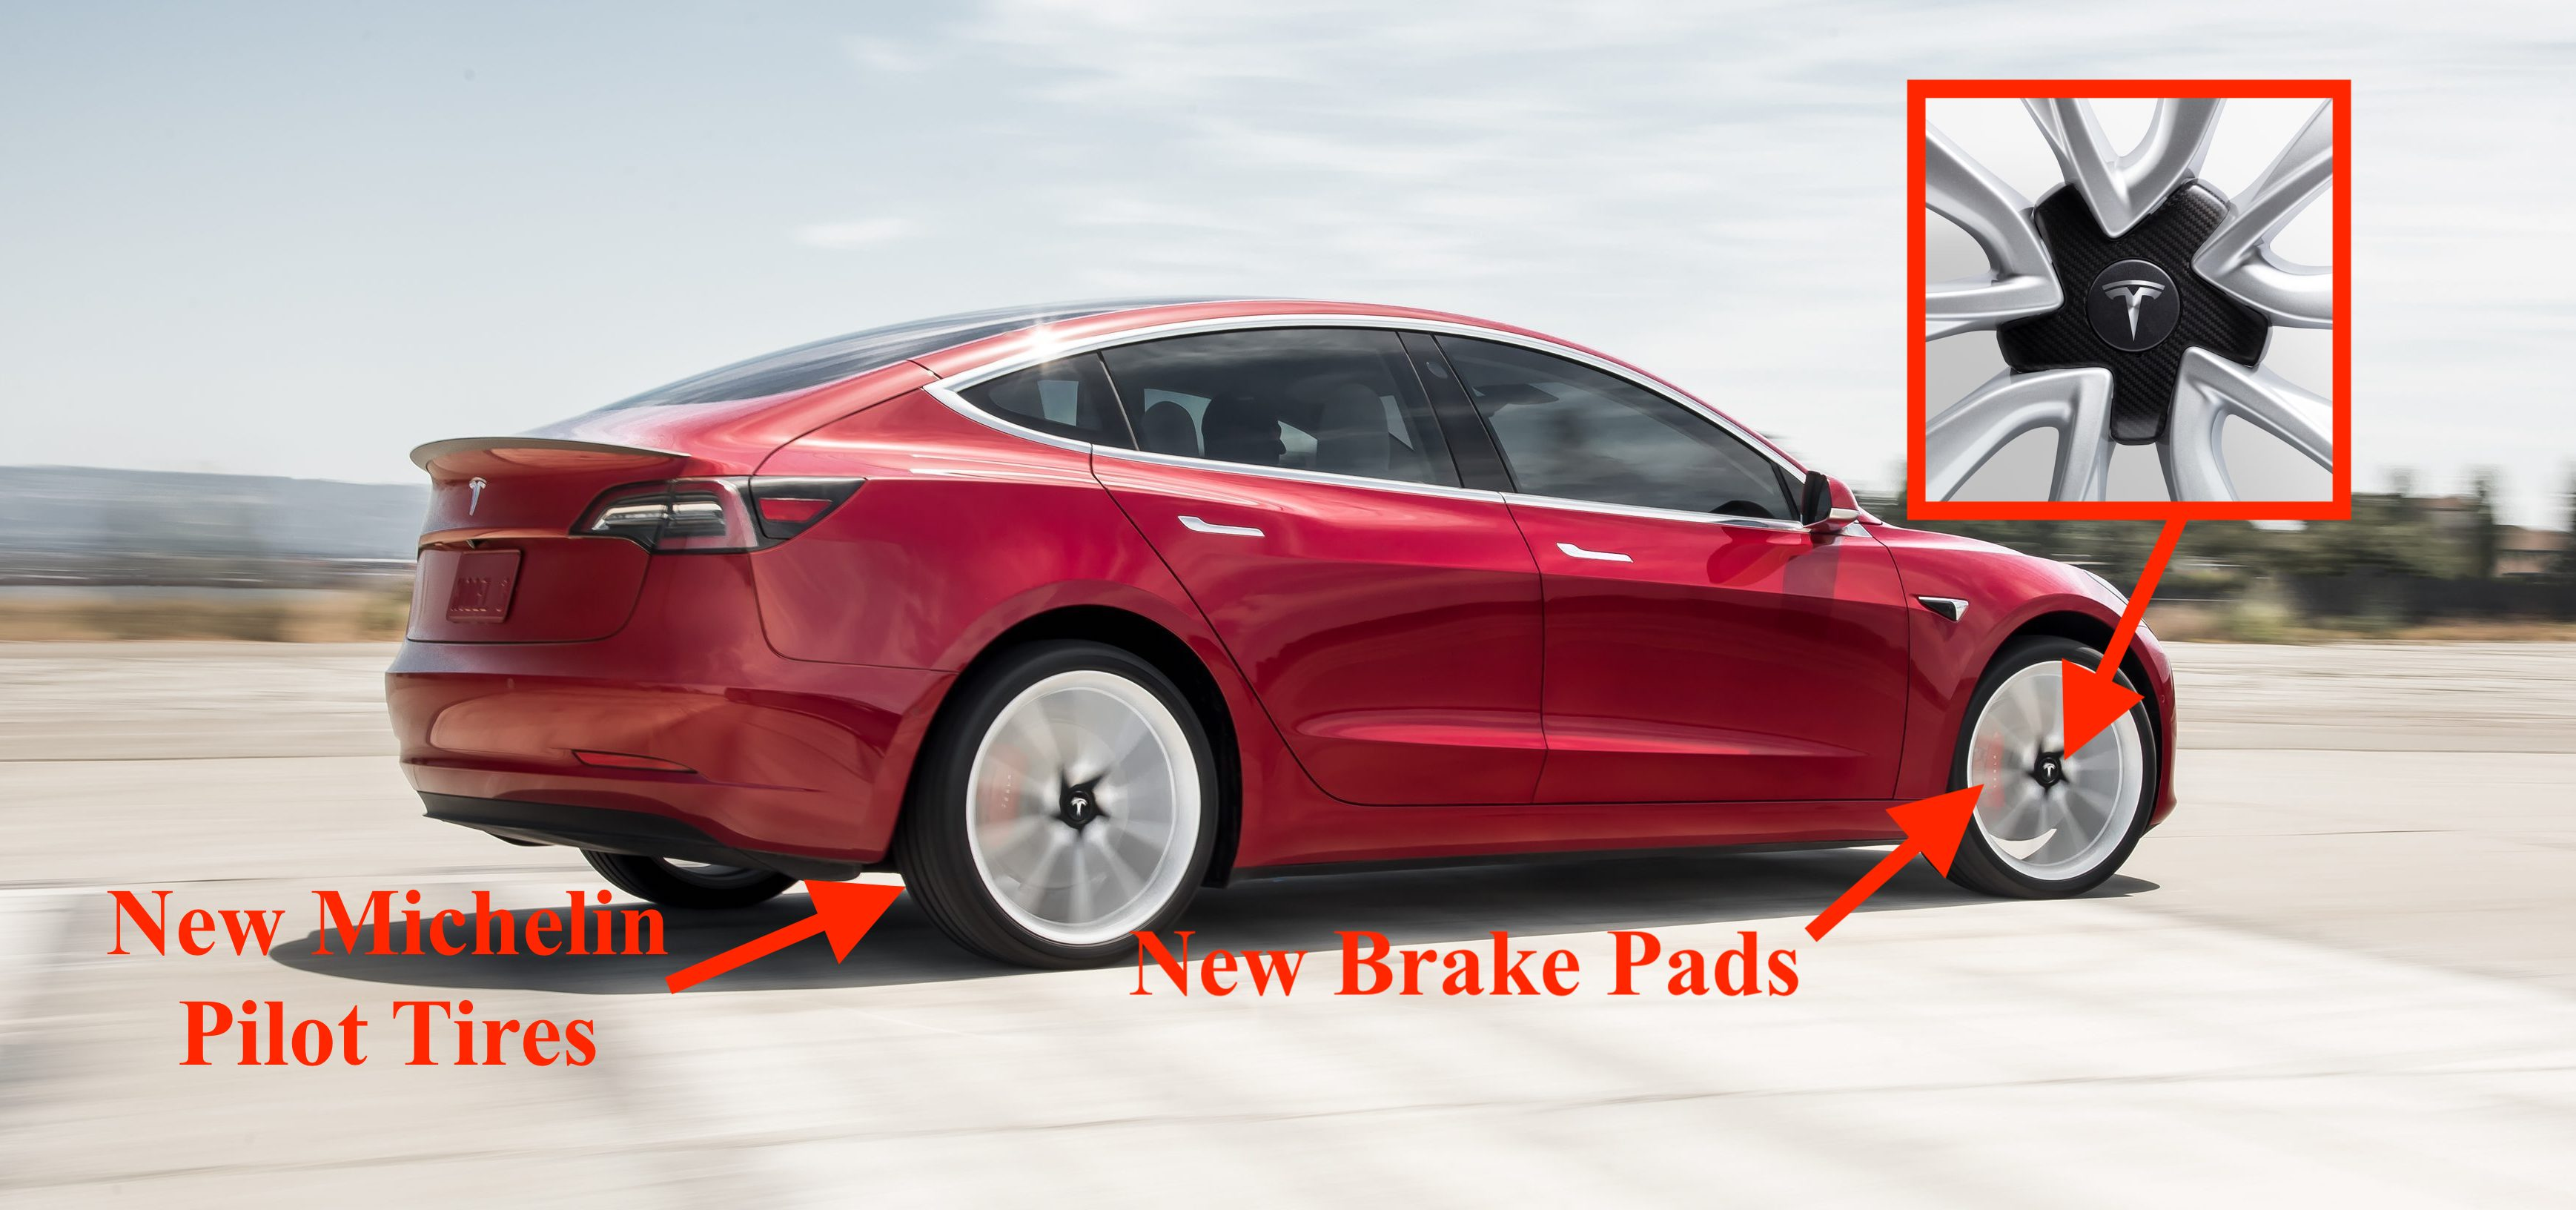 Tesla is planning a 'Track Mode Package' with sport tires, front brakes, and more - Electrek